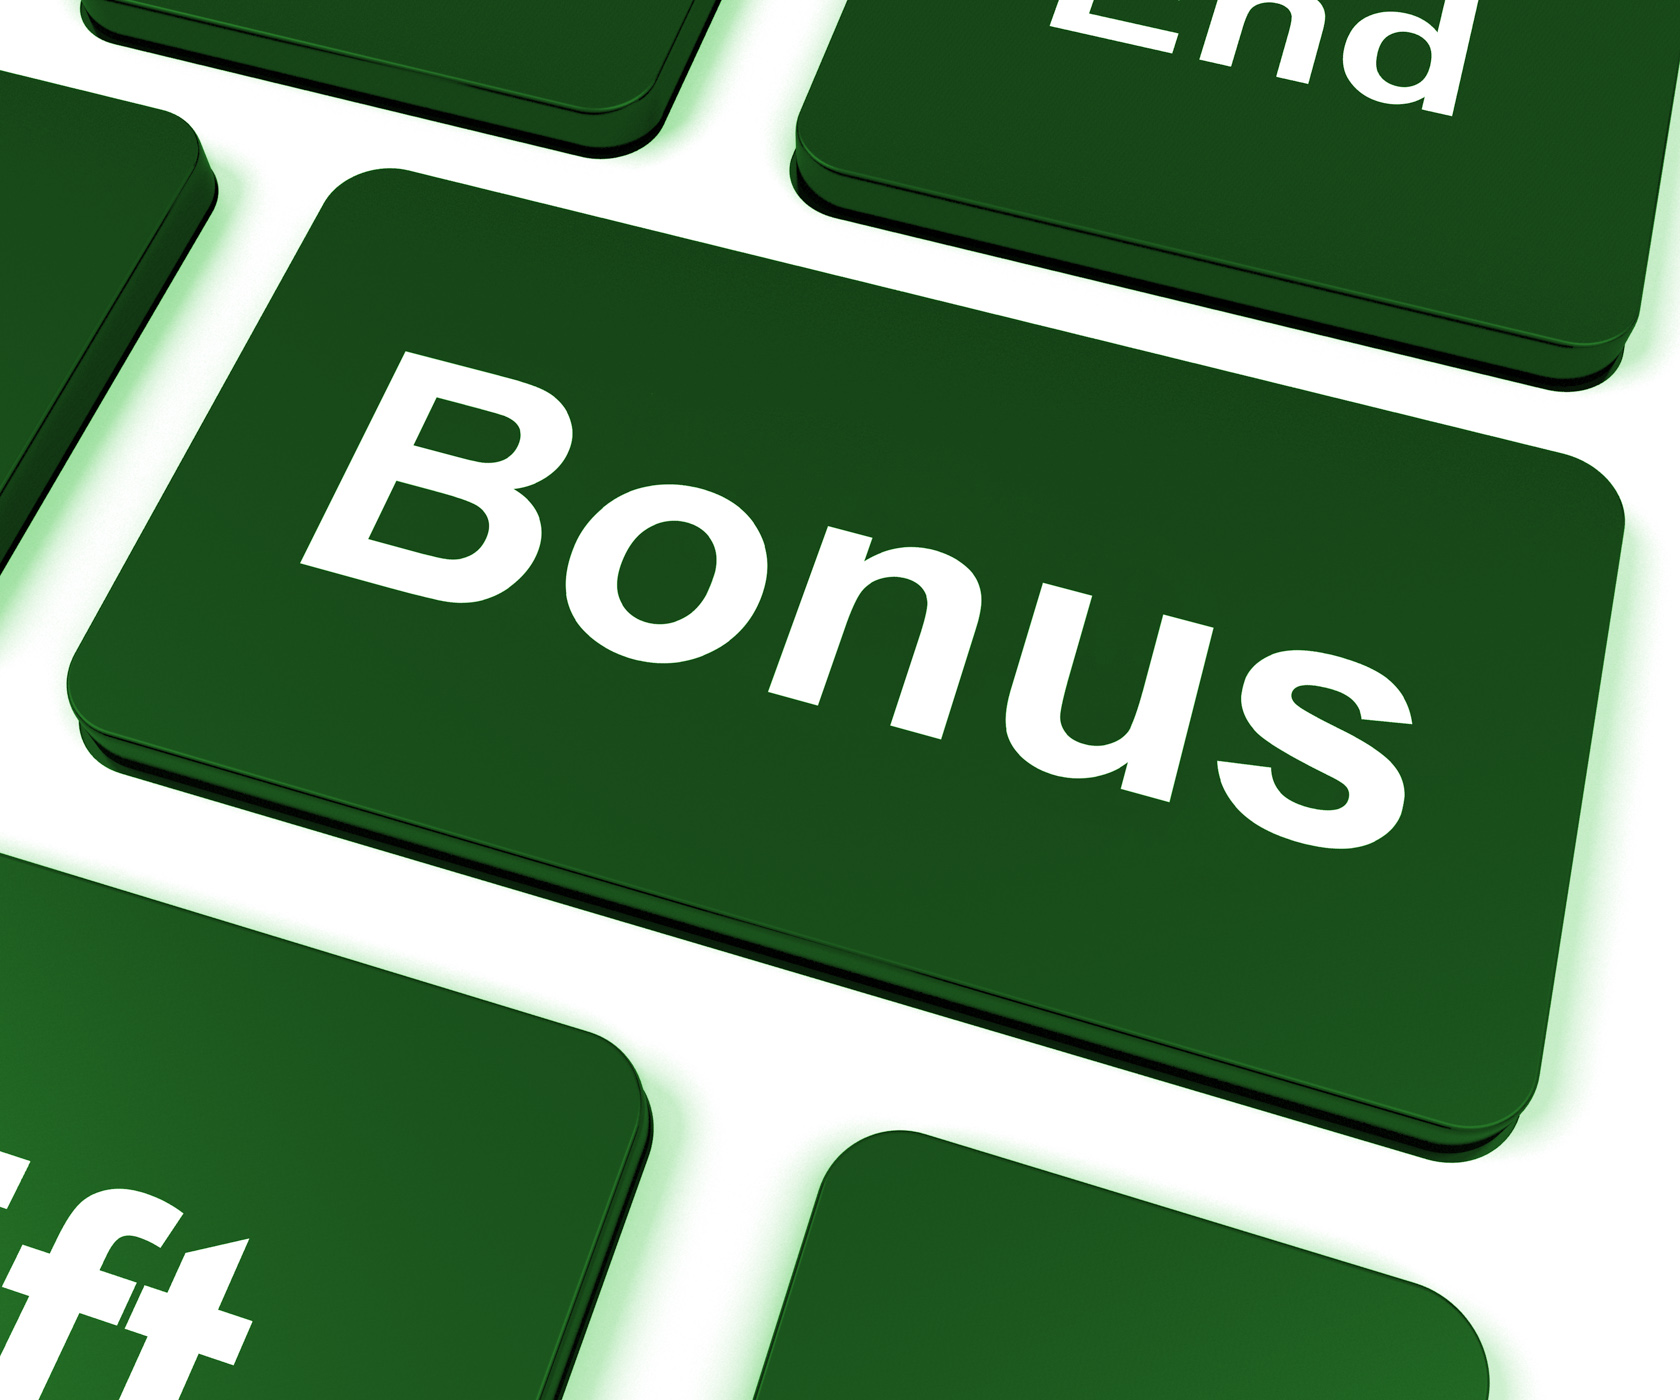 Bonus key shows extra gift or gratuity online photo